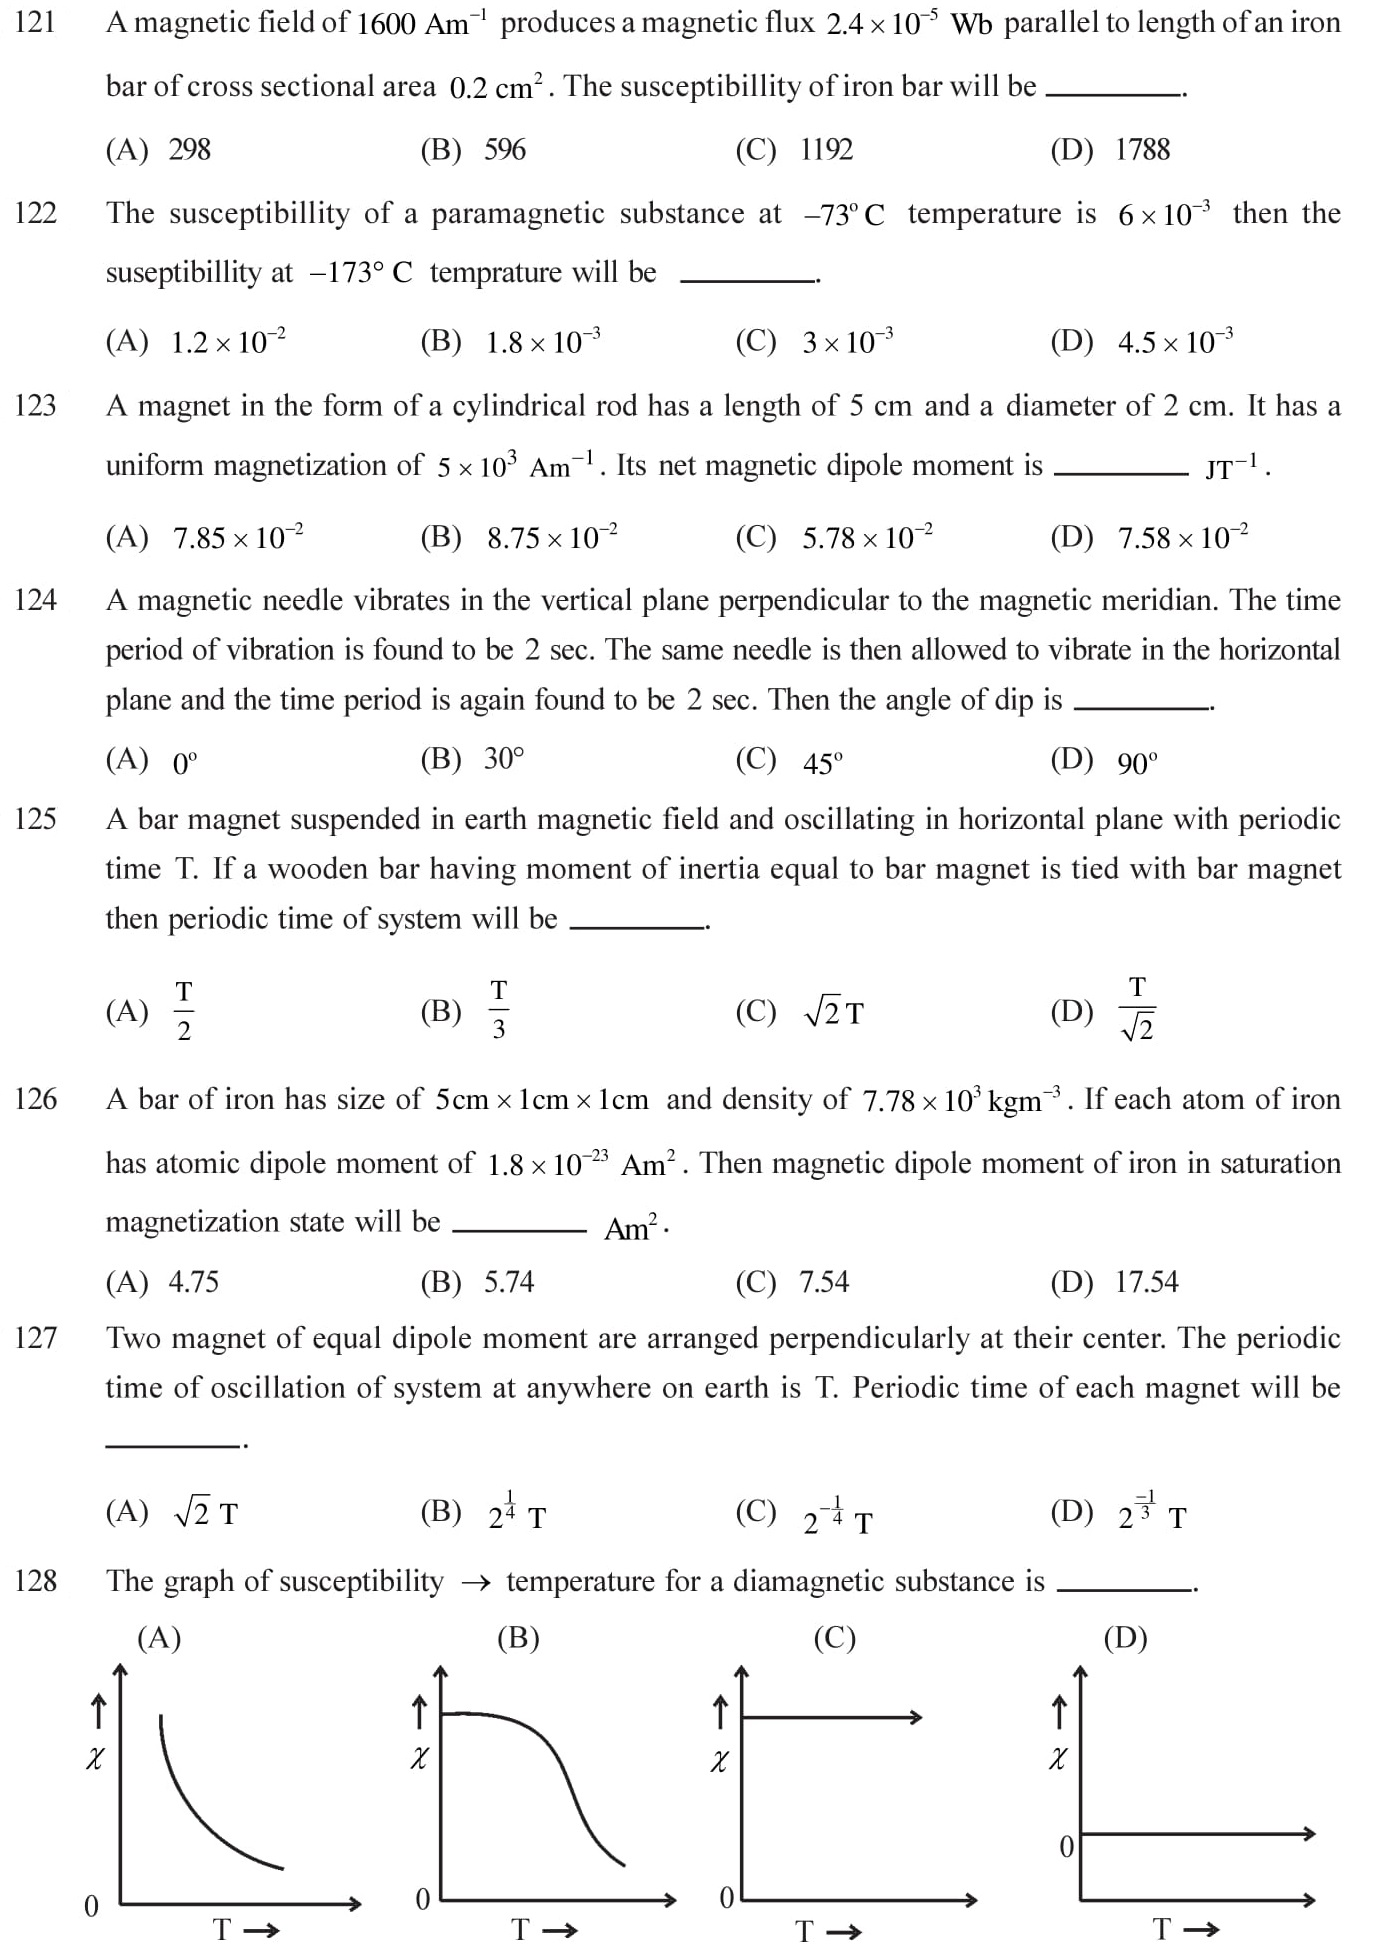 12 Physics Magnetism and Matter Questions for NEET, JEE, IIT set - 7